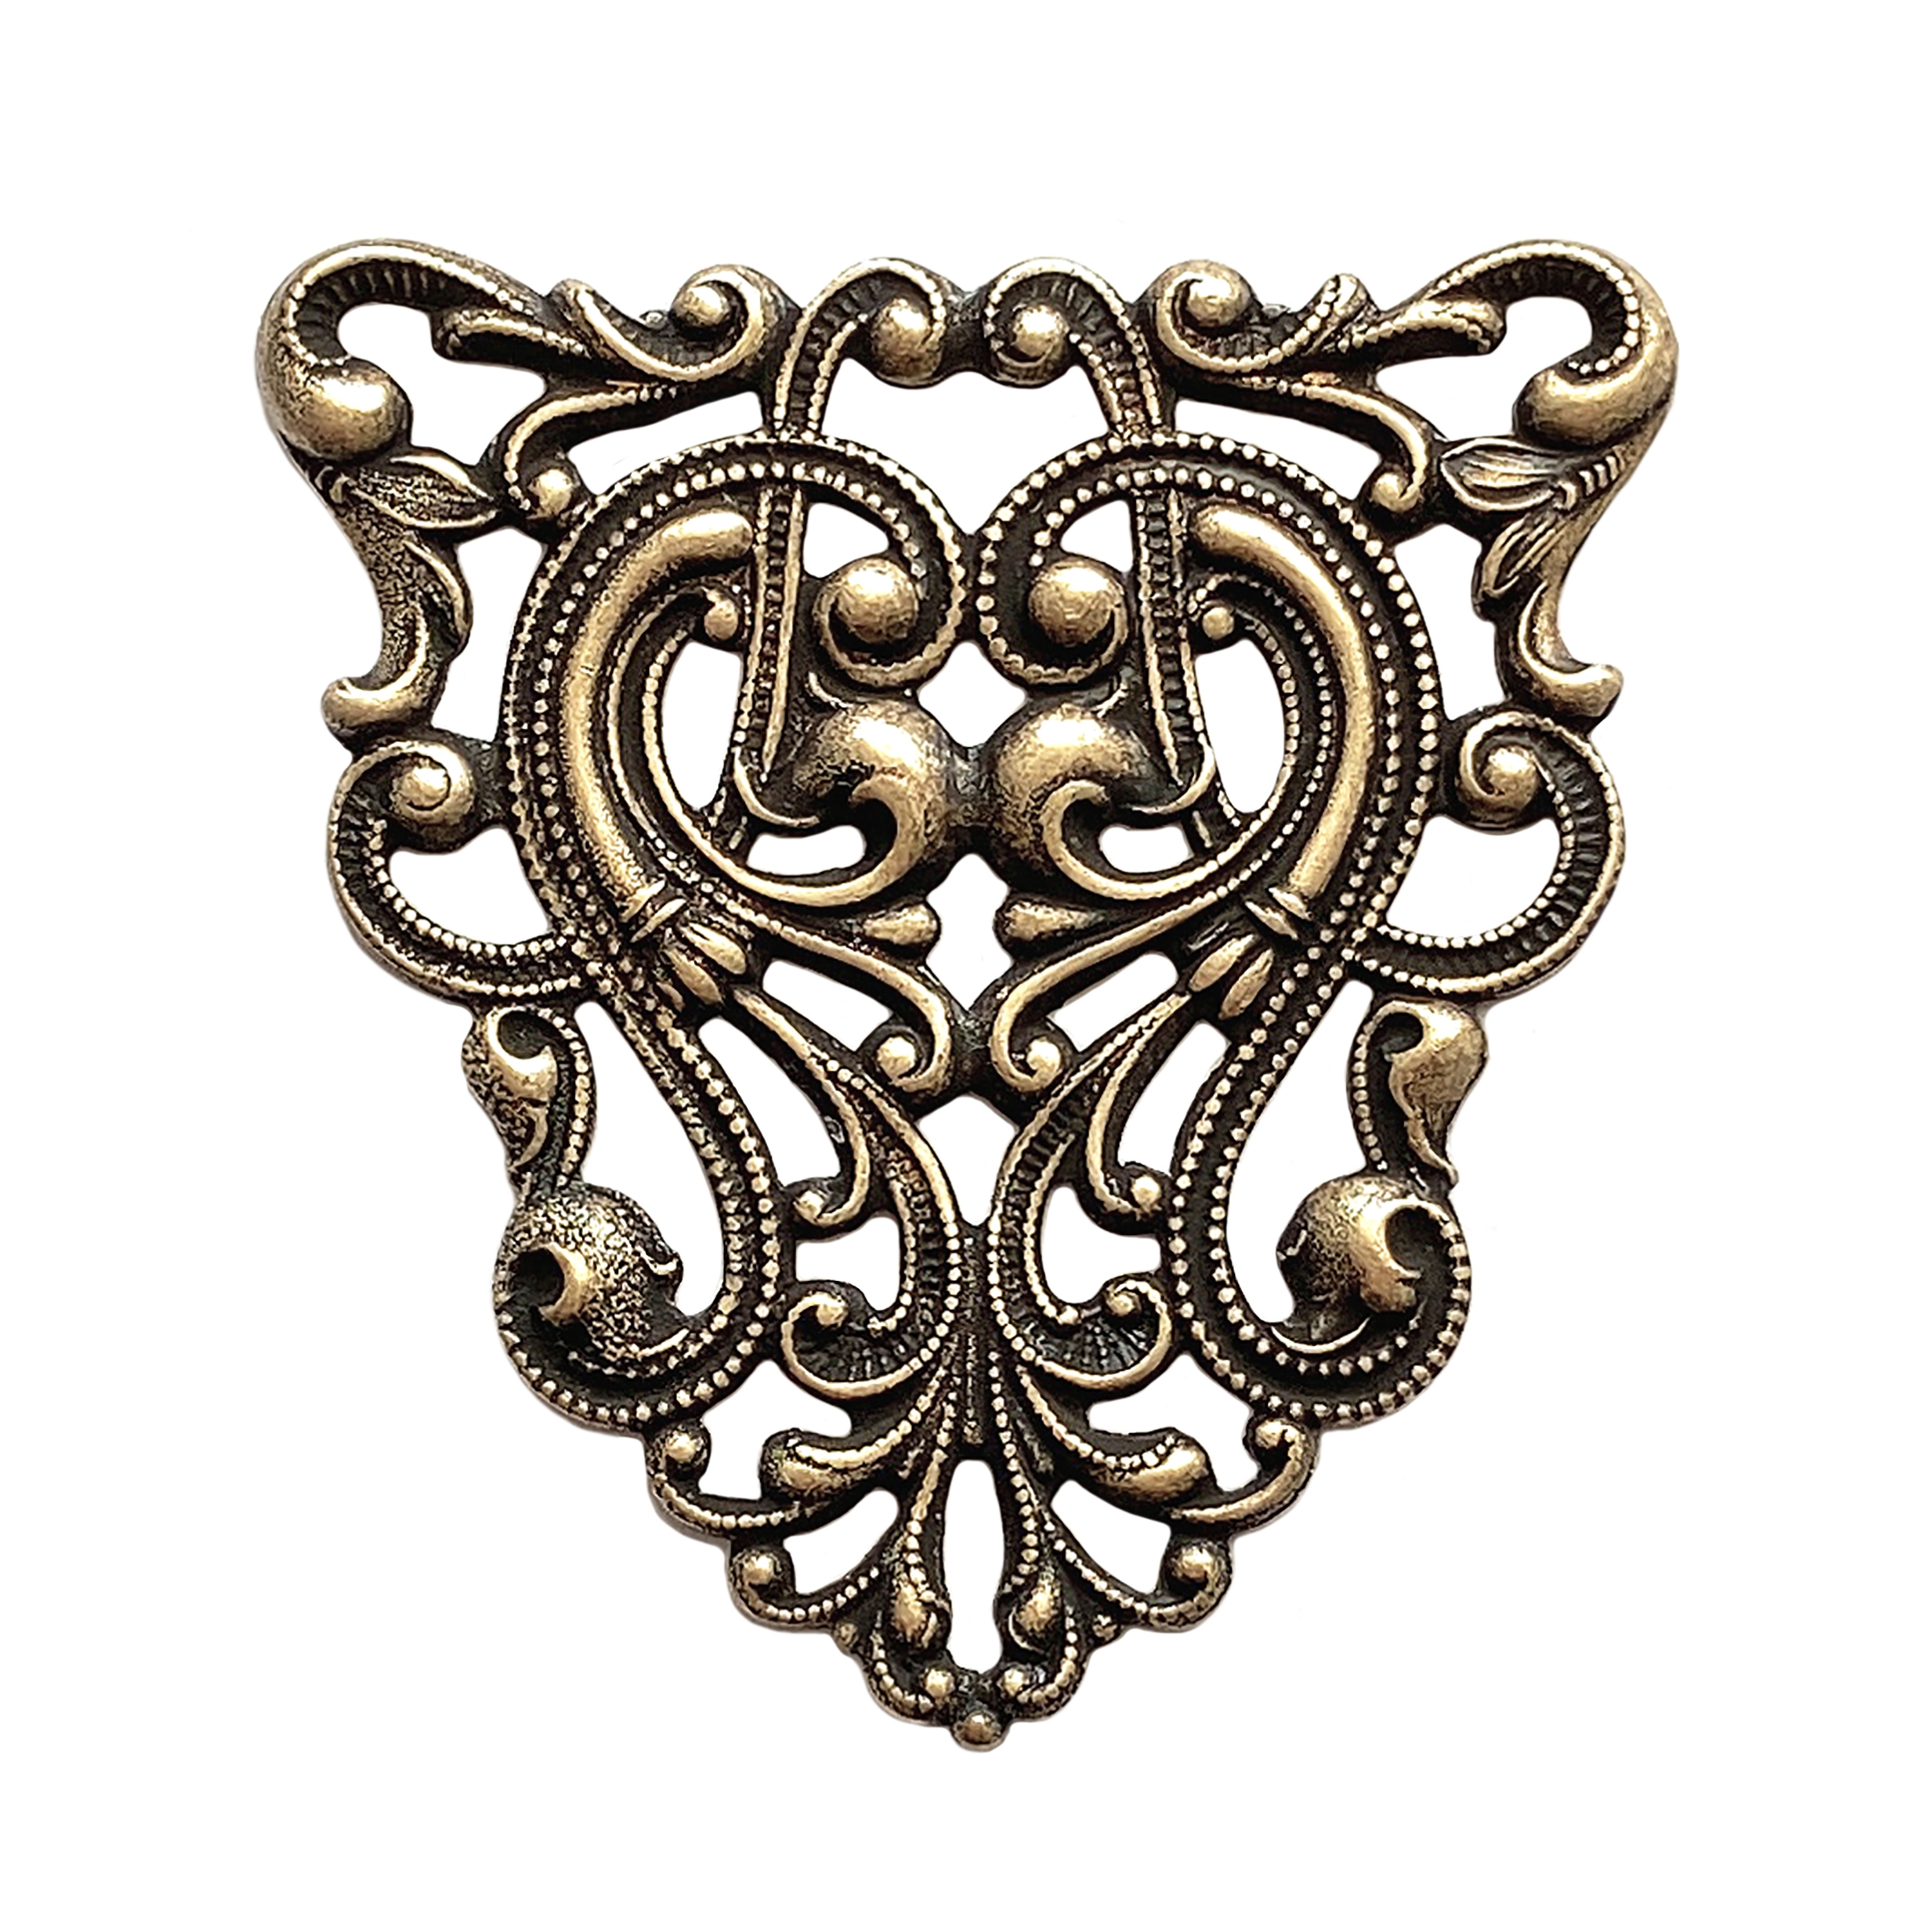 Art nouveau filigree, brass ox, antique brass, filigree, 40x37mm, brass stamping, connector, finding, US-made, nickel-free, jewelry making, jewelry supplies, vintage supplies, plated brass, brass filigree, design, jewelry findings, filigree stamping,02214